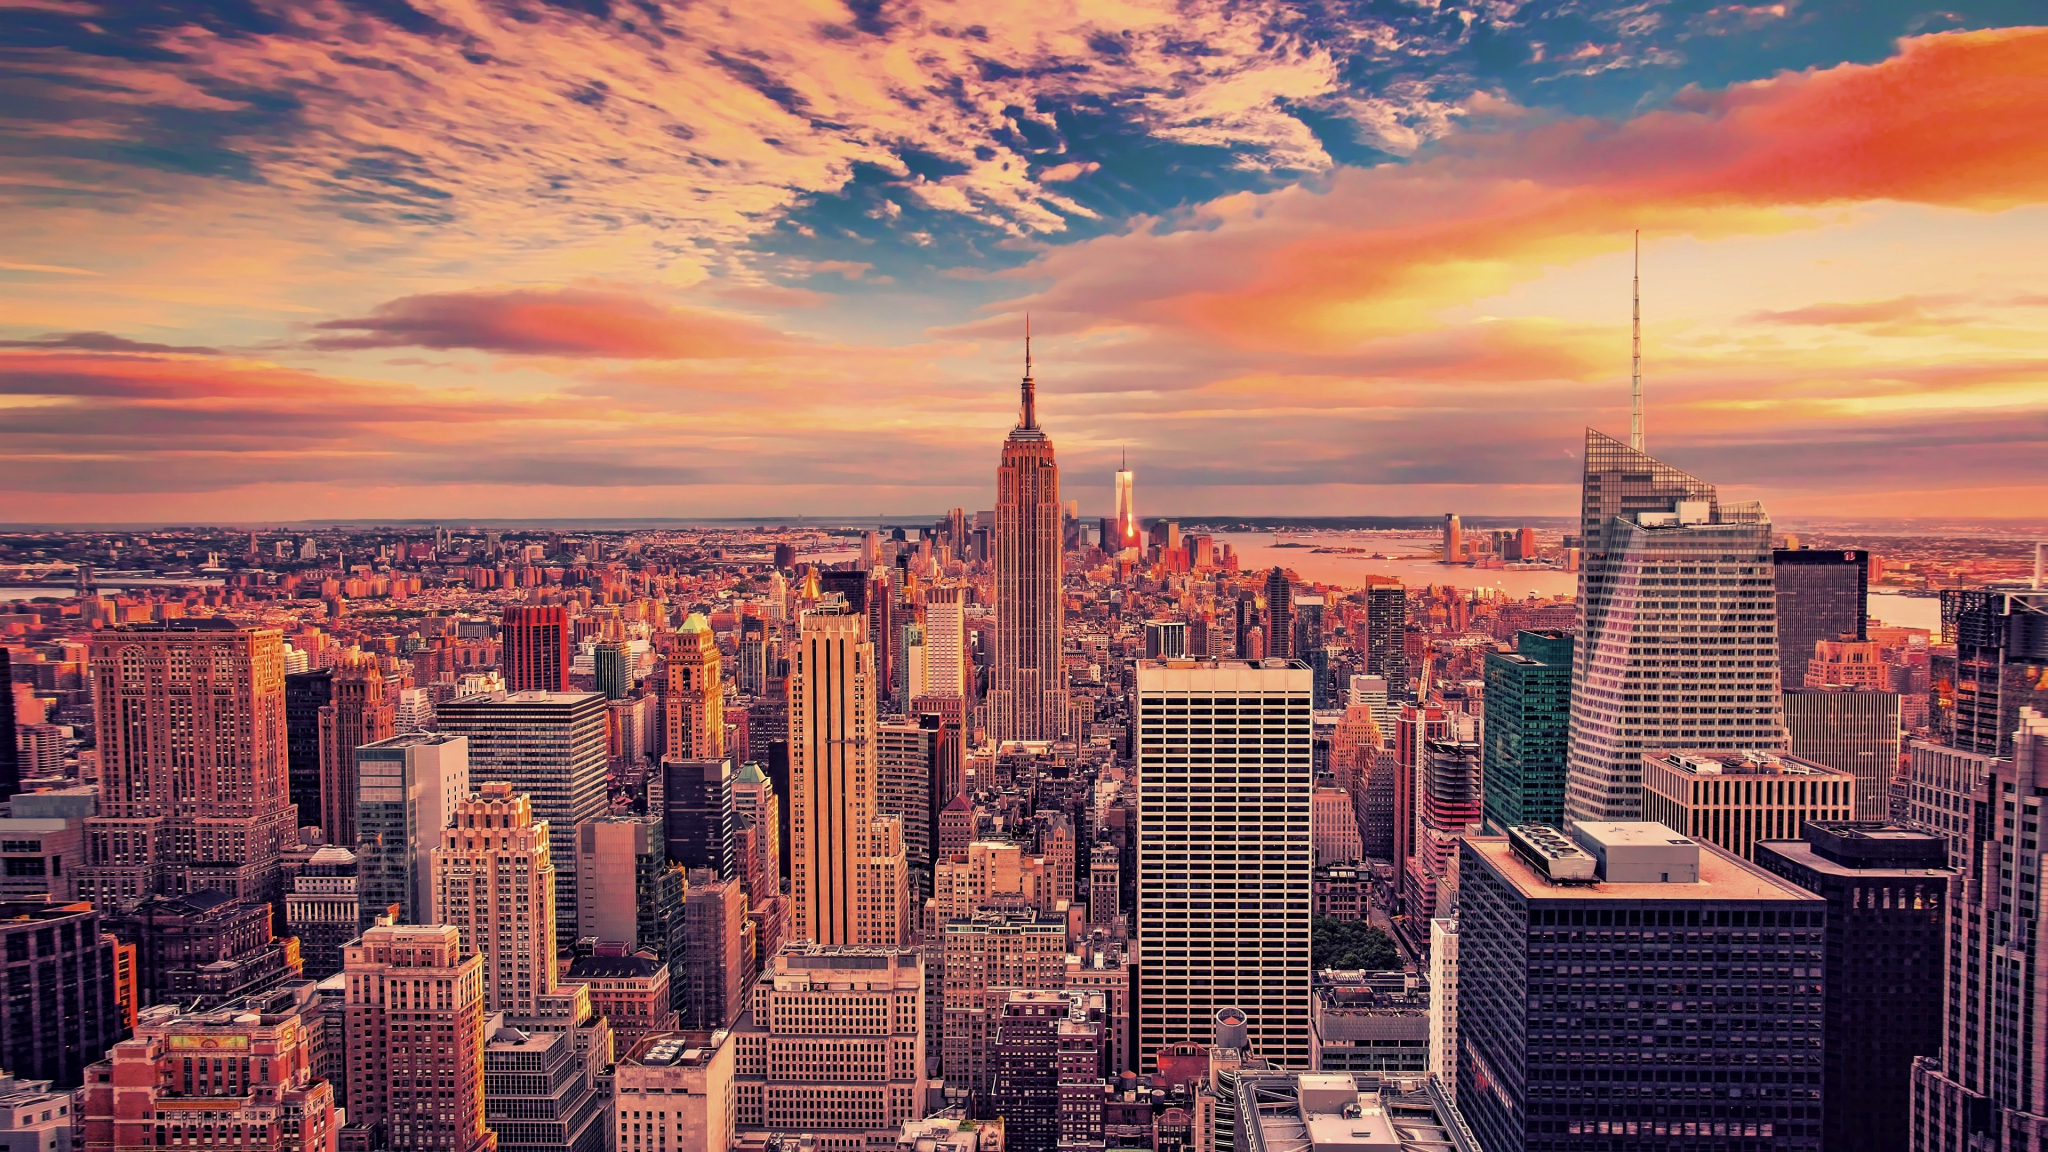 2048x1152 wallpaper Empire state building, buildings, skyscrapers, new york city, sunset, 4k